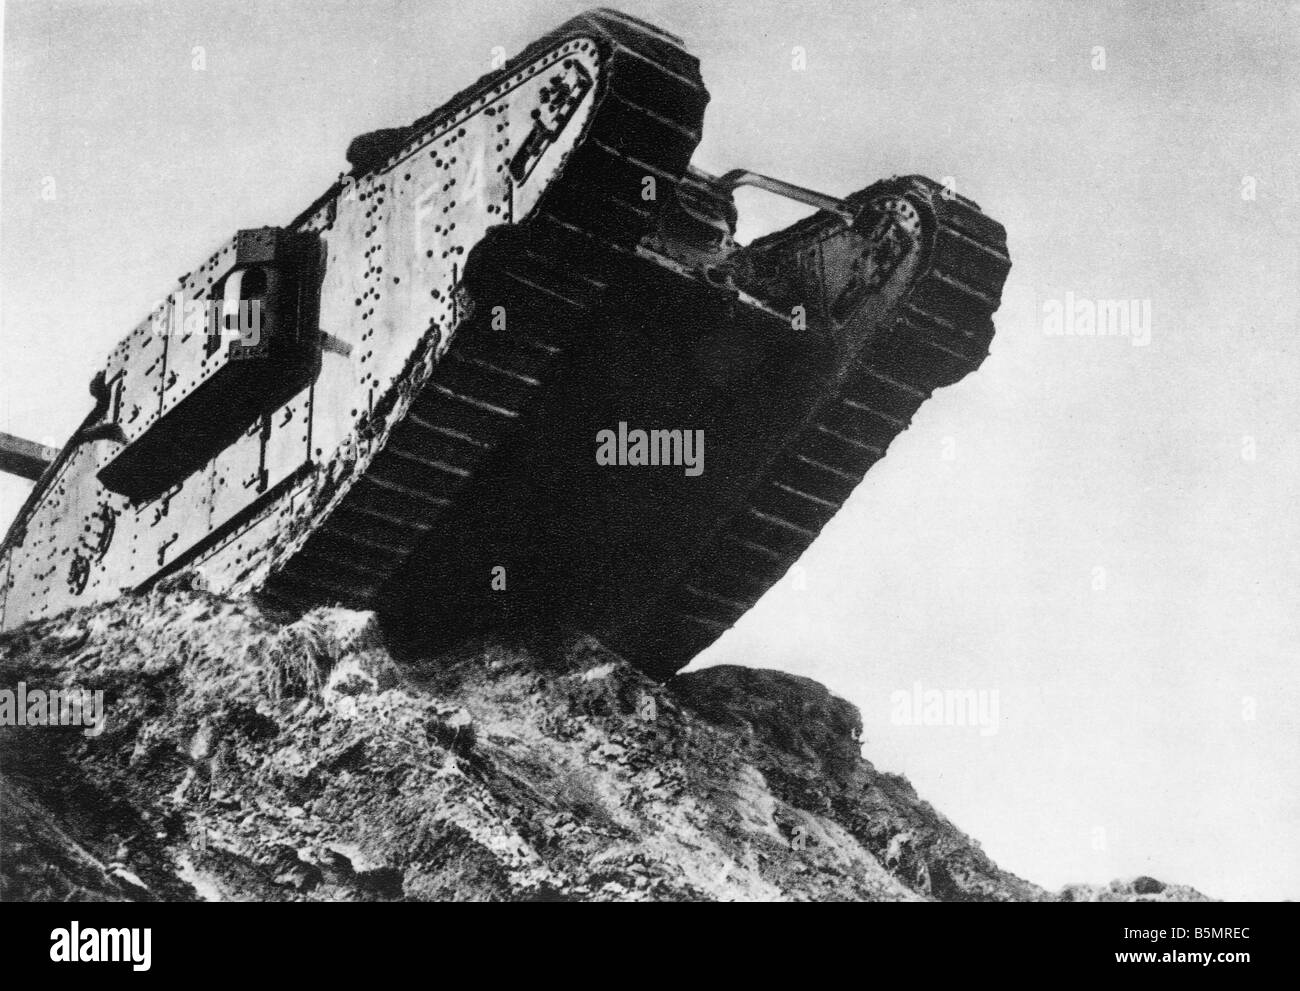 At Cambrai Stock Photos Images Alamy Battle Story 1917 9 11 20 A2 2 E Tank English World War One